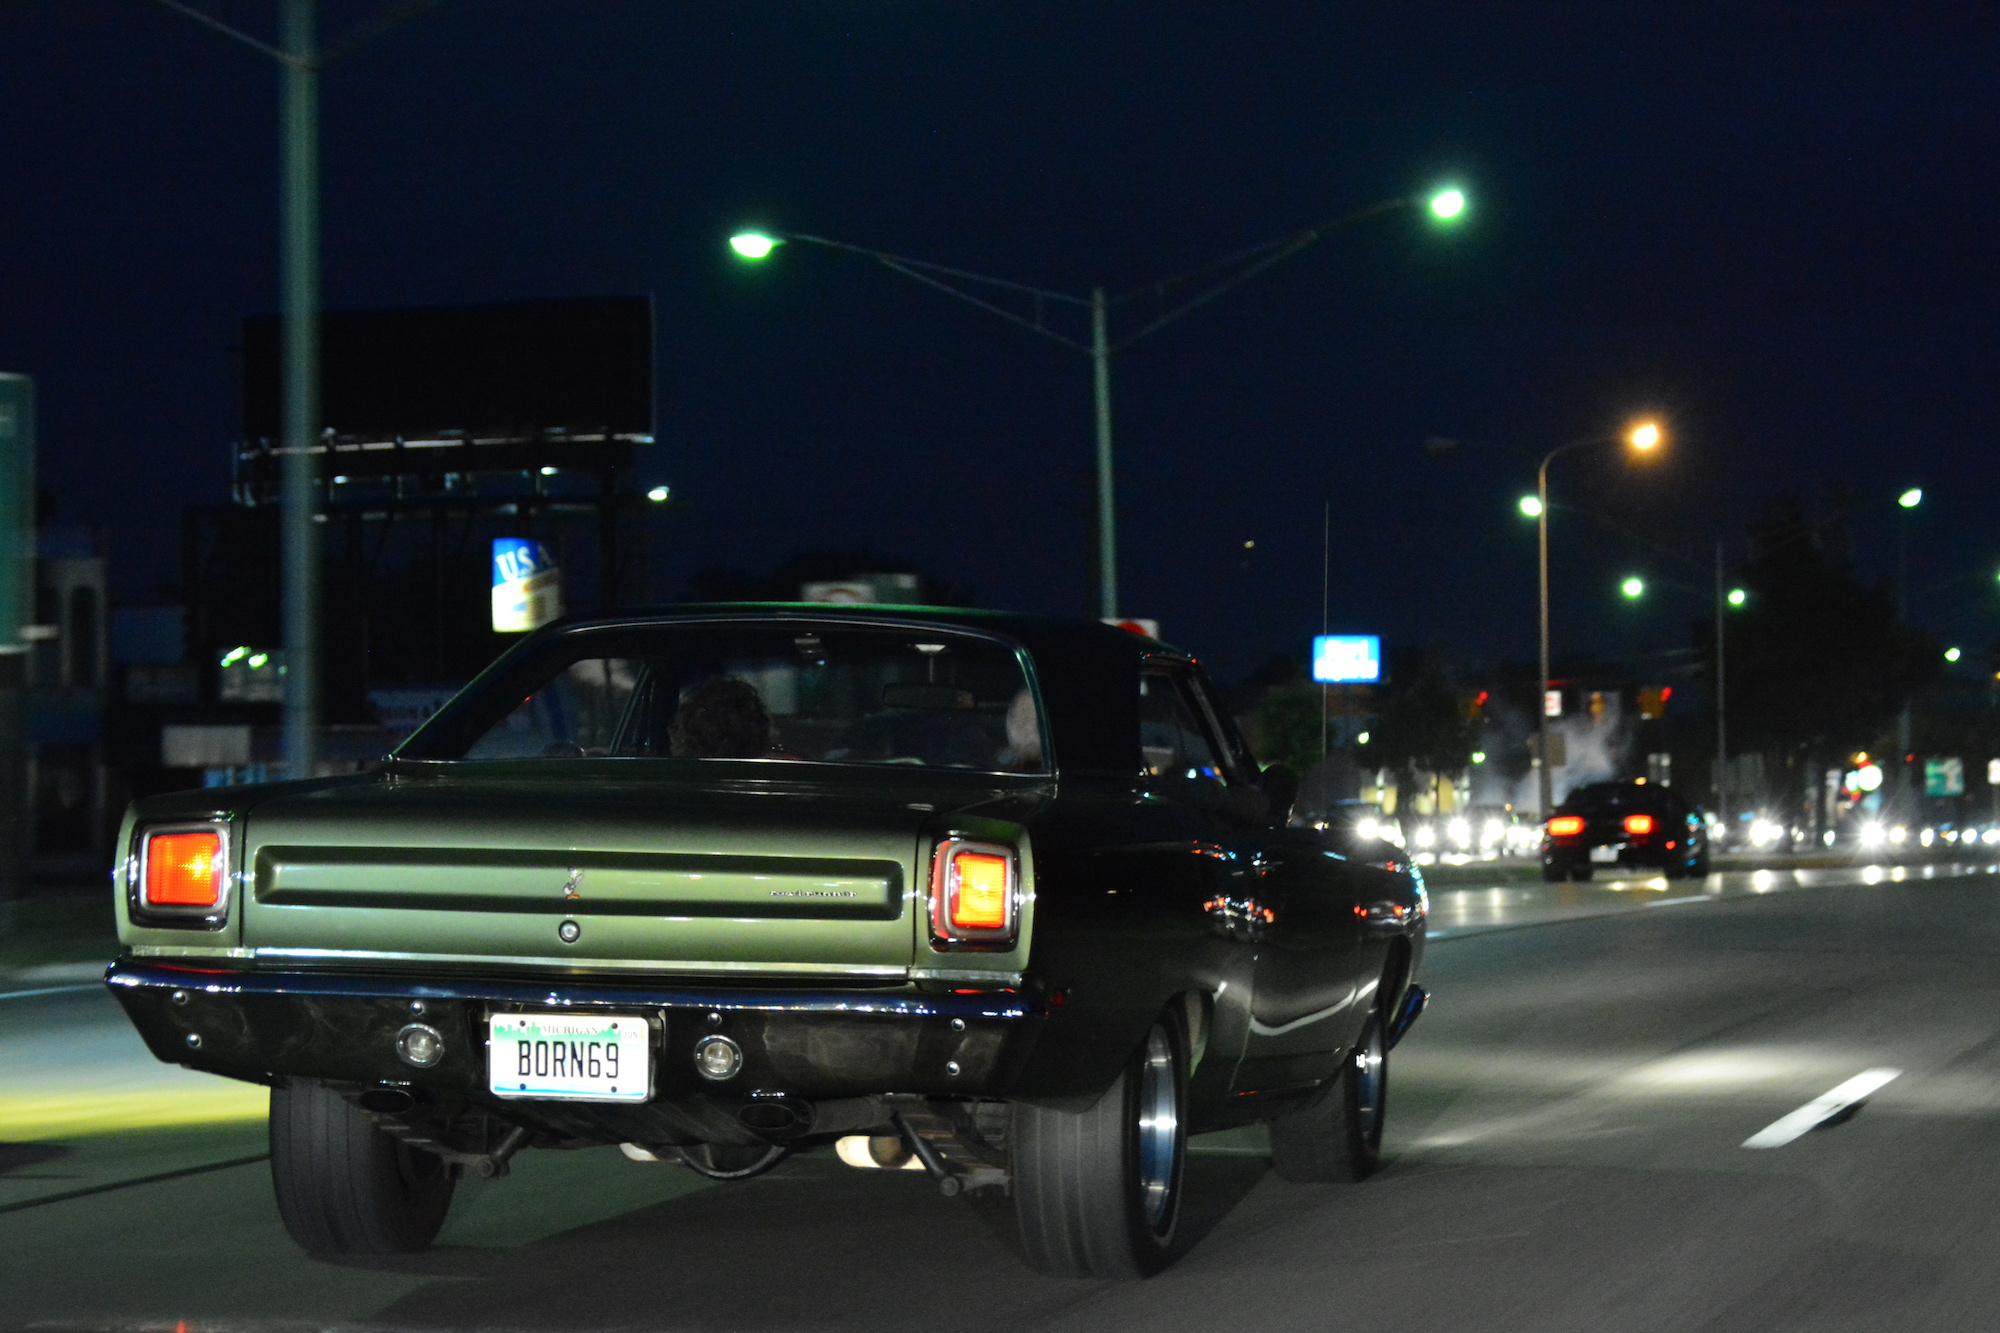 Roadrunner drag racing at Roadkill Nights Powered by Dodge